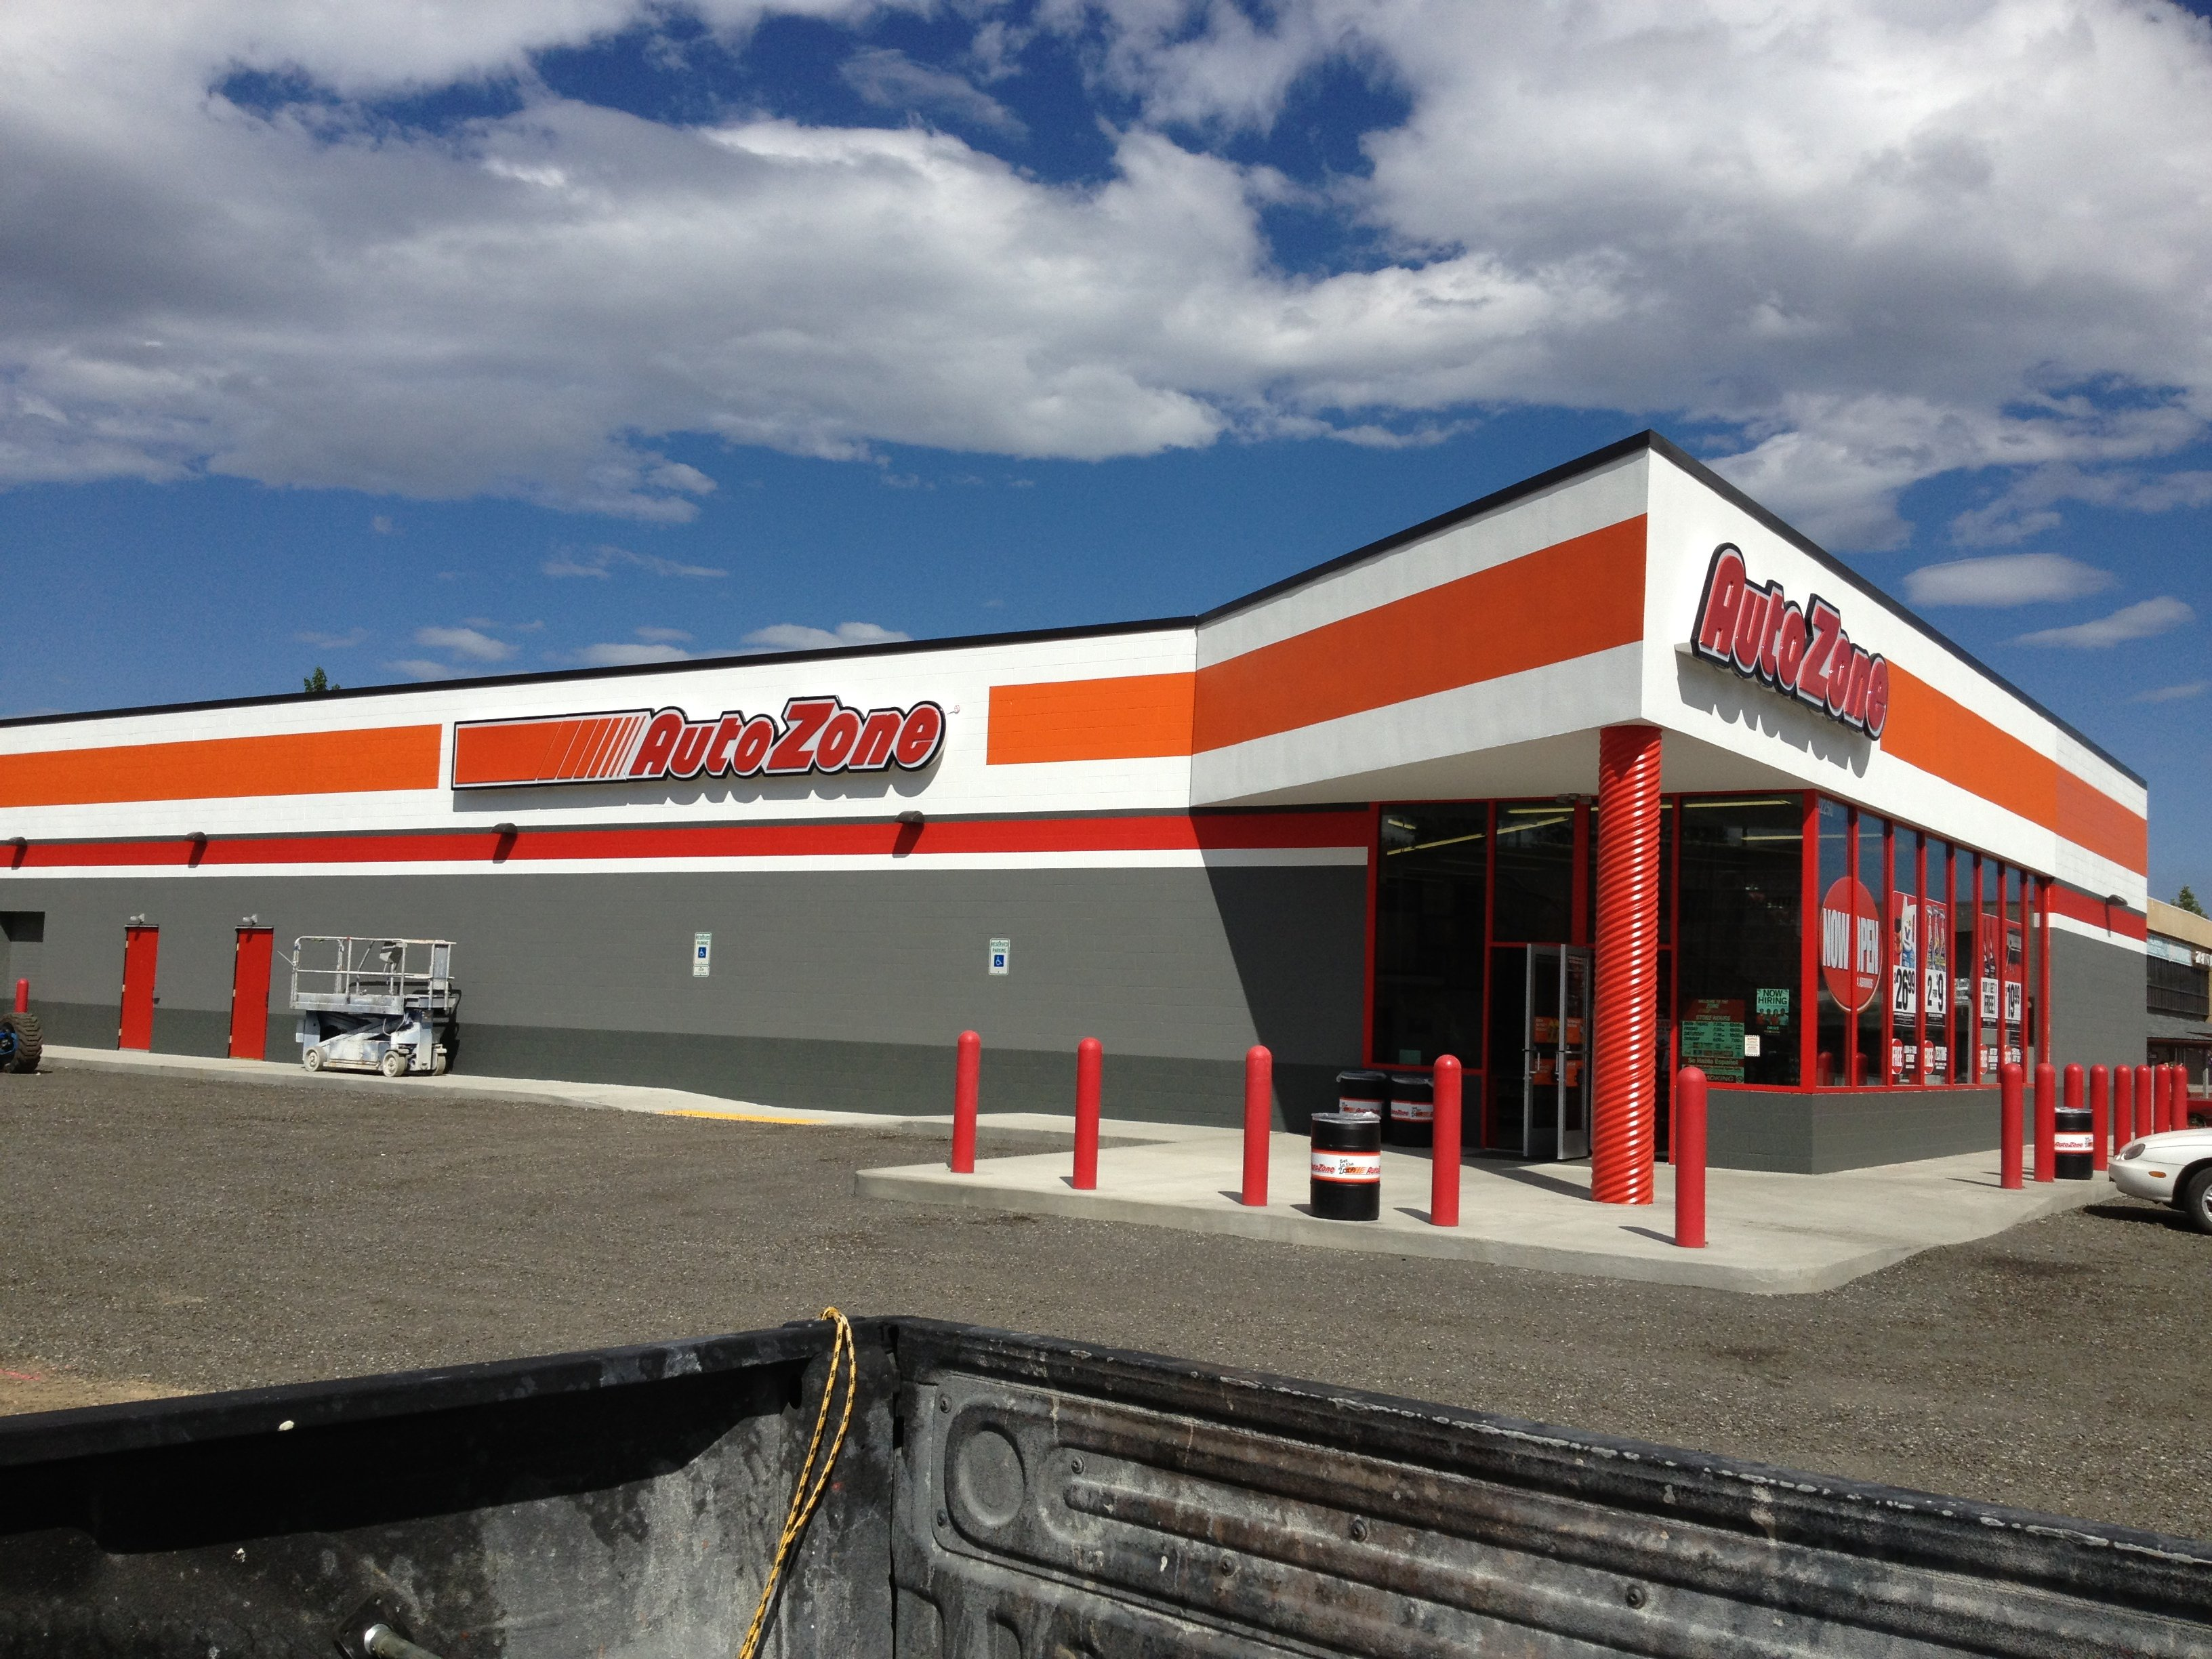 Alaska painting service llc painting contractor - Exterior house painting anchorage ...